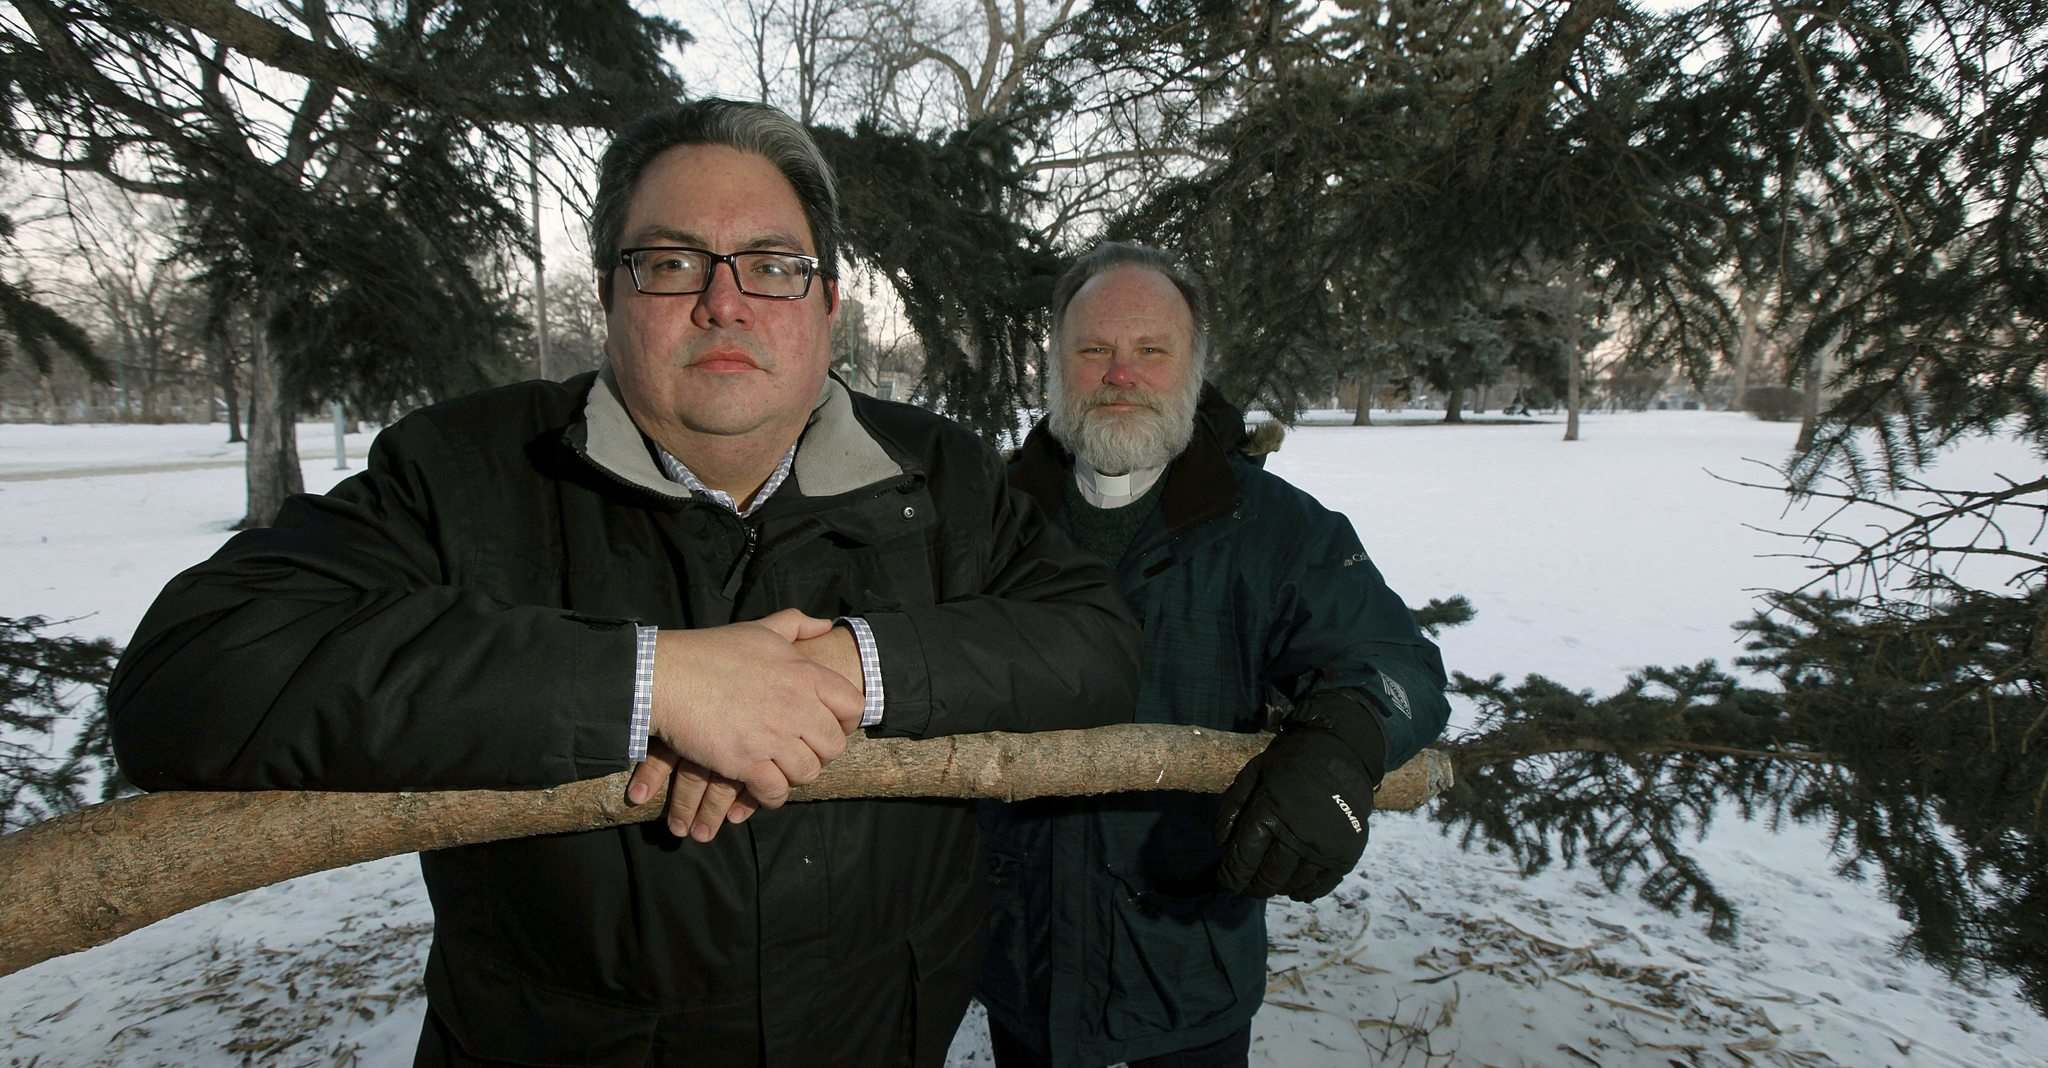 PHIL HOSSACK / Winnipeg Free Press</p><p>Kyle Mason (left) and Very Reverend Paul Johnson at St. John&rsquo;s Park, where Canada&rsquo;s second-ever Healing Forest will see its first phase at the site finished in the summer.</p></p></p></p>